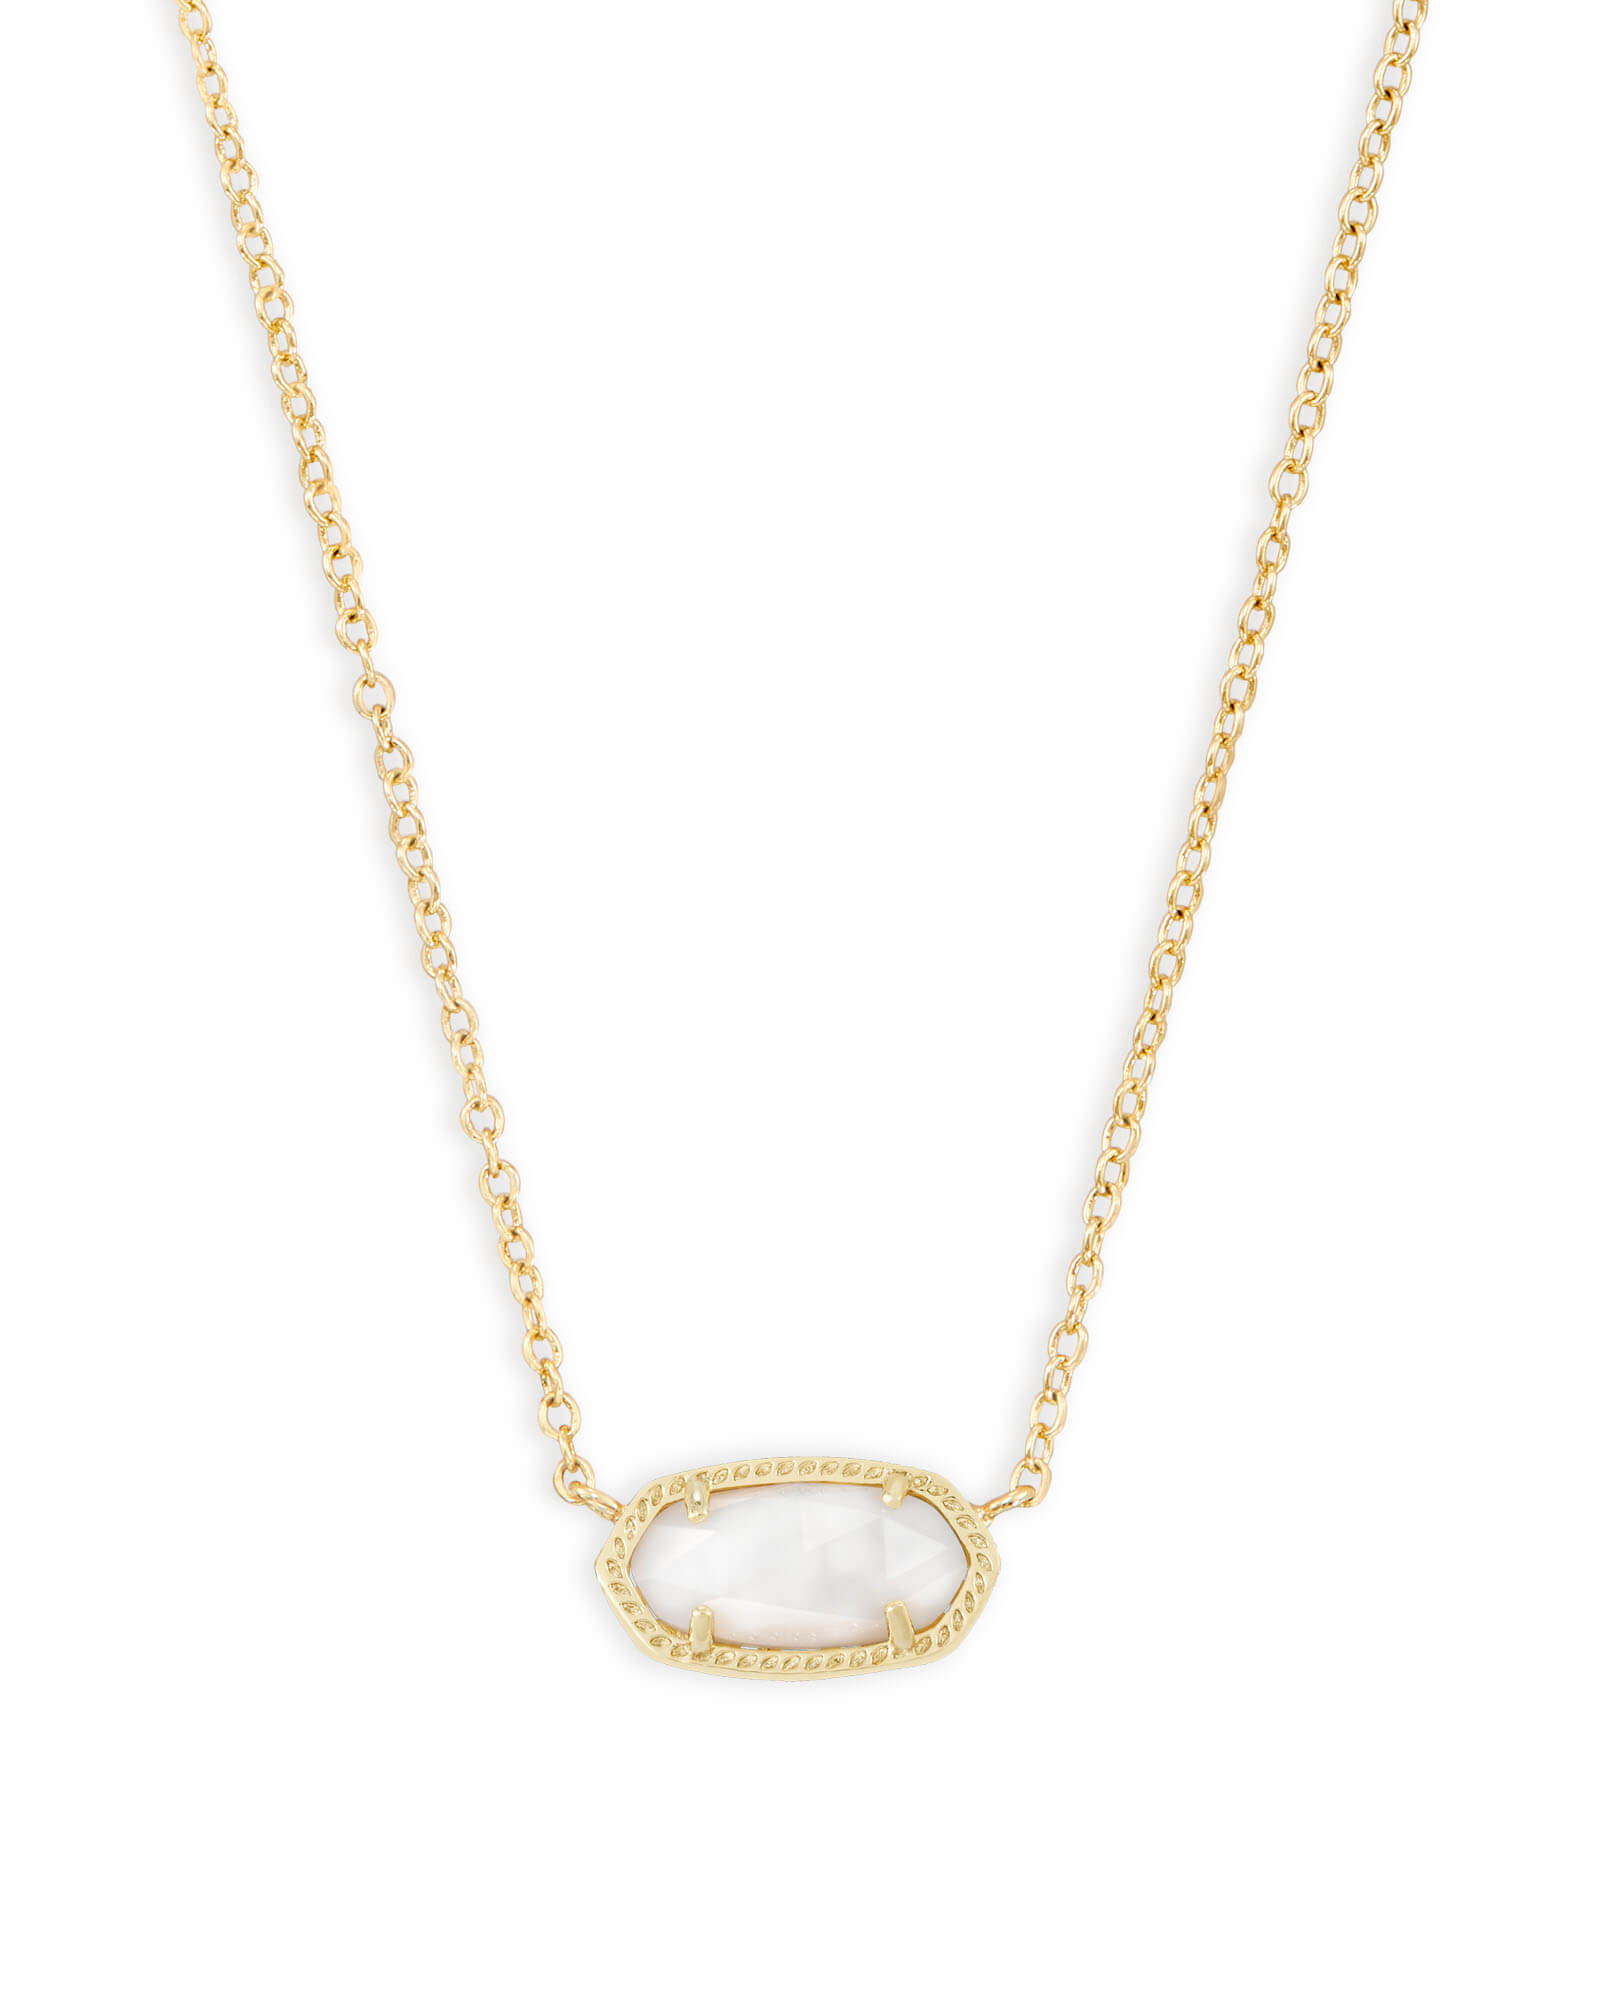 f86dbae25 Elisa Gold Pendant Necklace in White Pearl